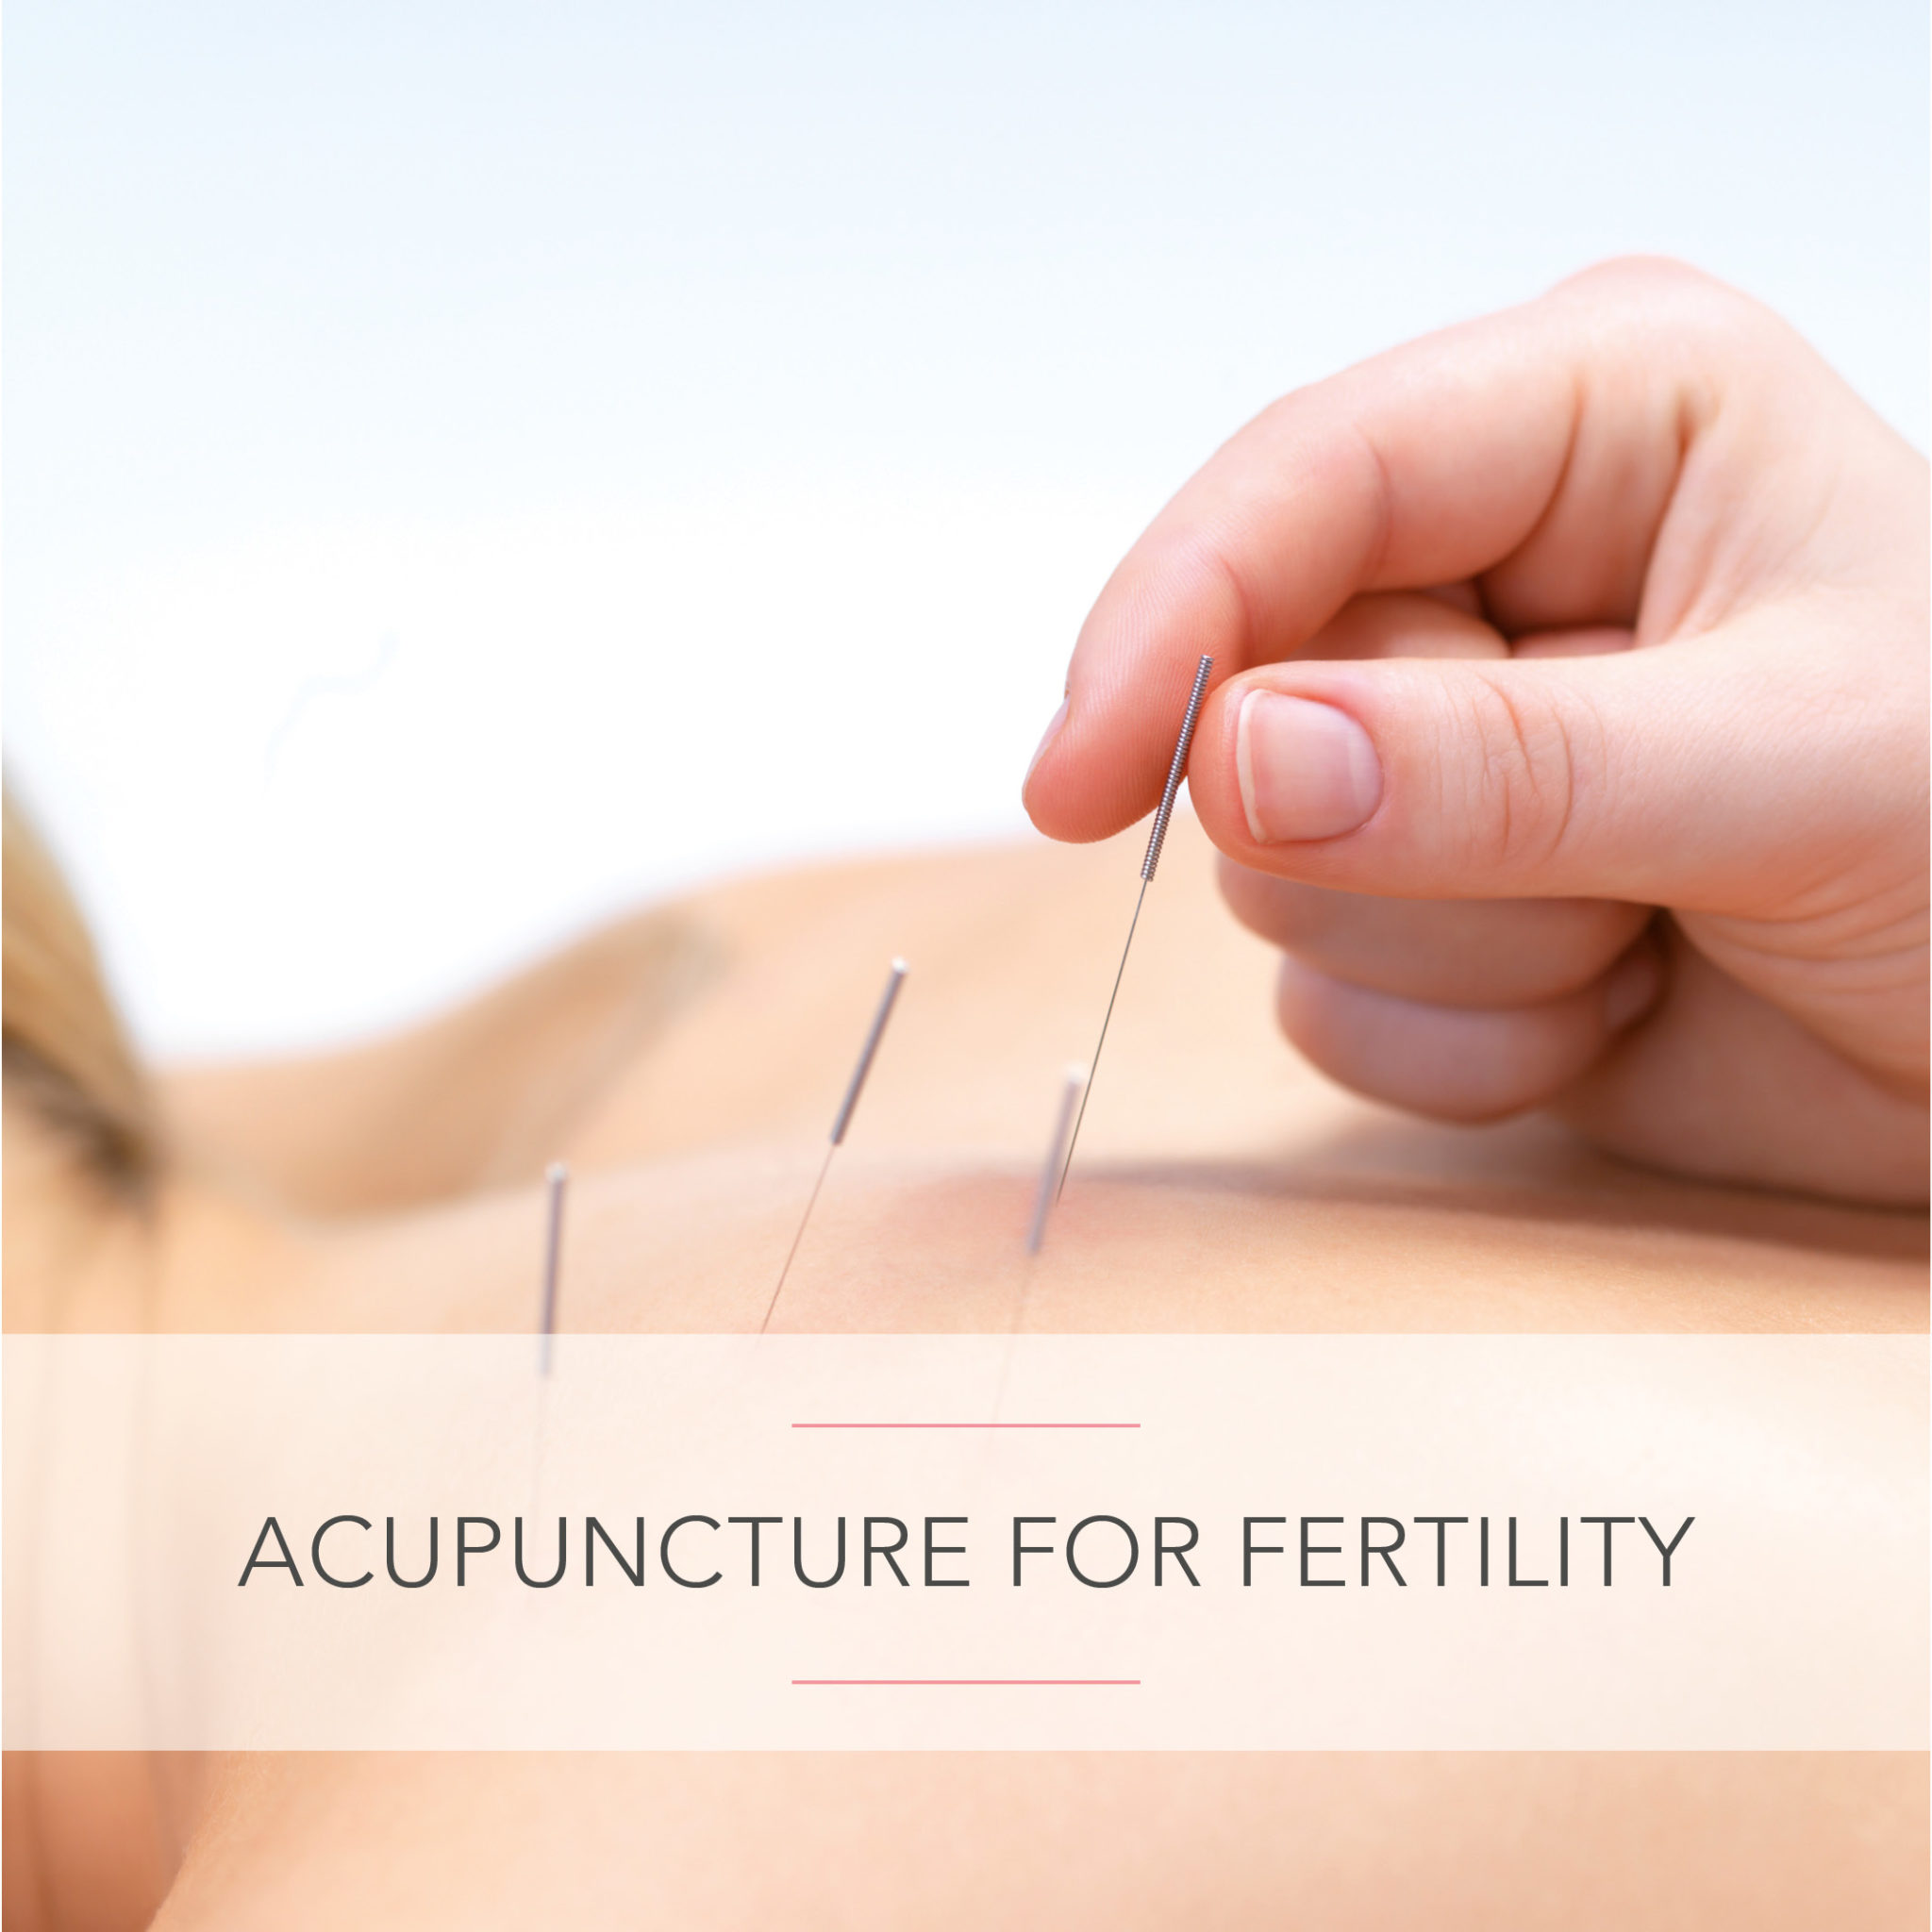 Complementary Fertility Therapies: Acupuncture for Fertility